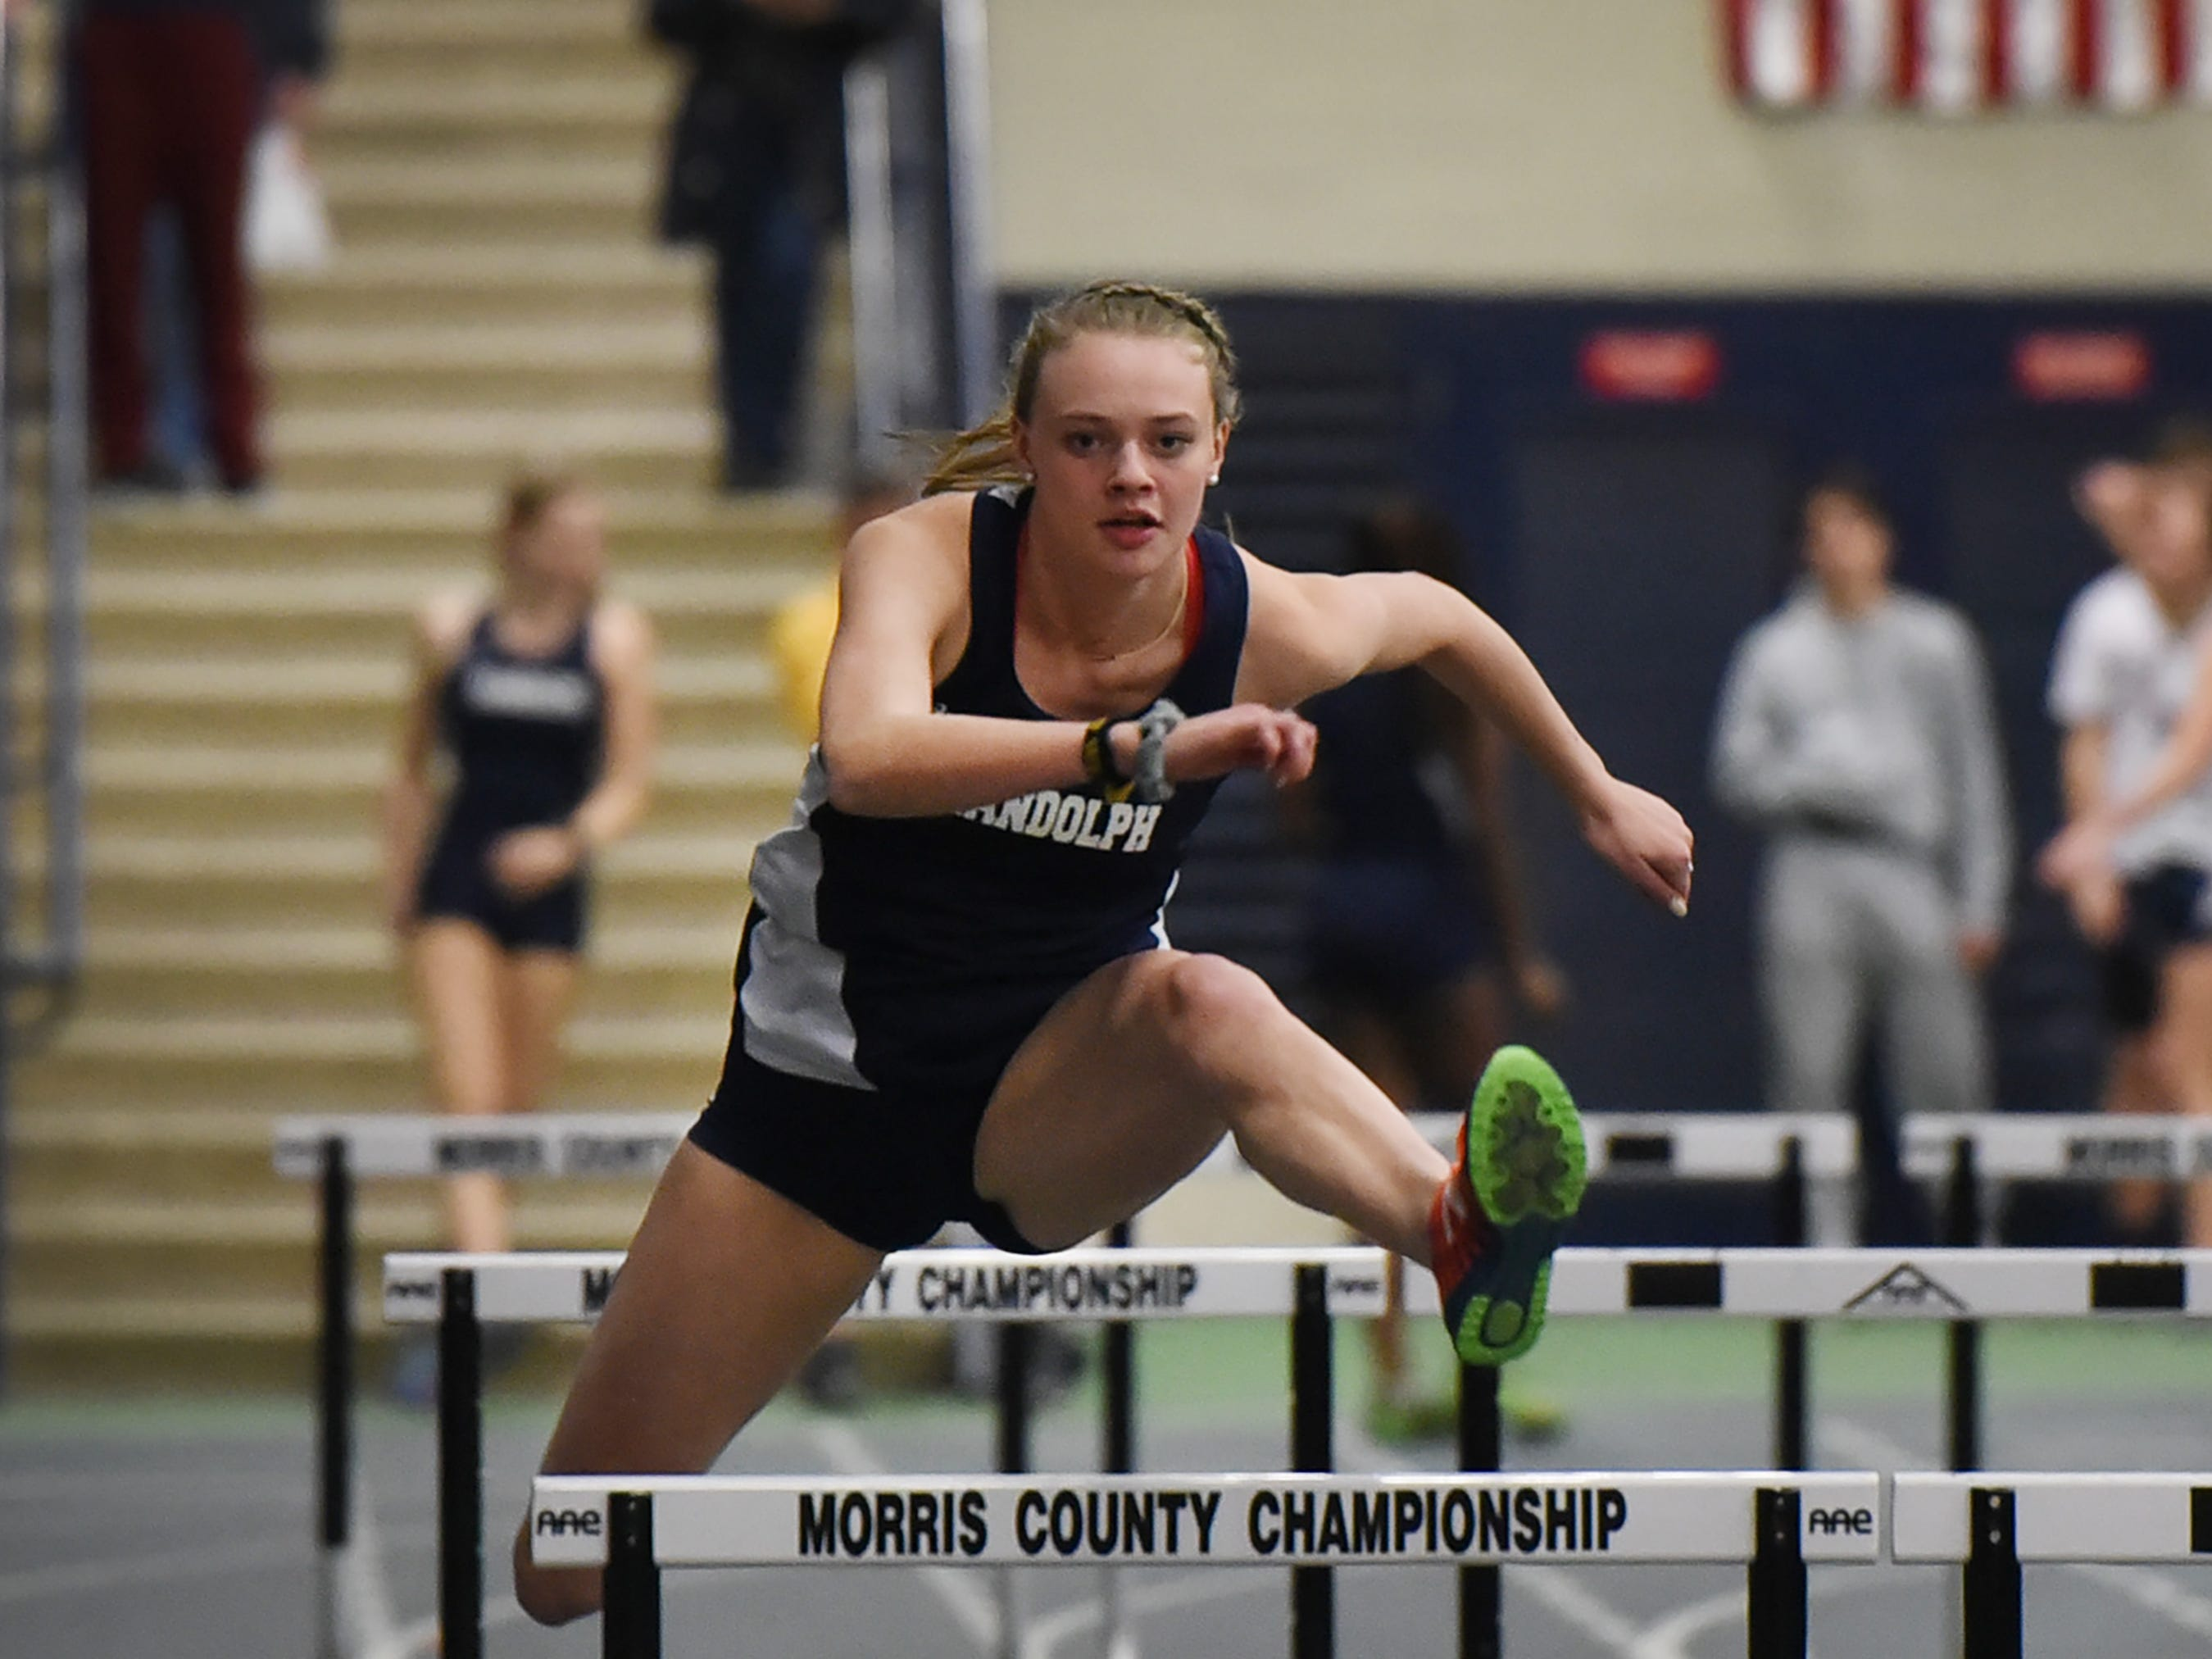 Randolph senior Meghan O'Malley, who has signed a National Letter of Intent with Wake Forest, competes in shuttle hurdles at Morris County Relays at Drew University in Madison on 01/09/19.